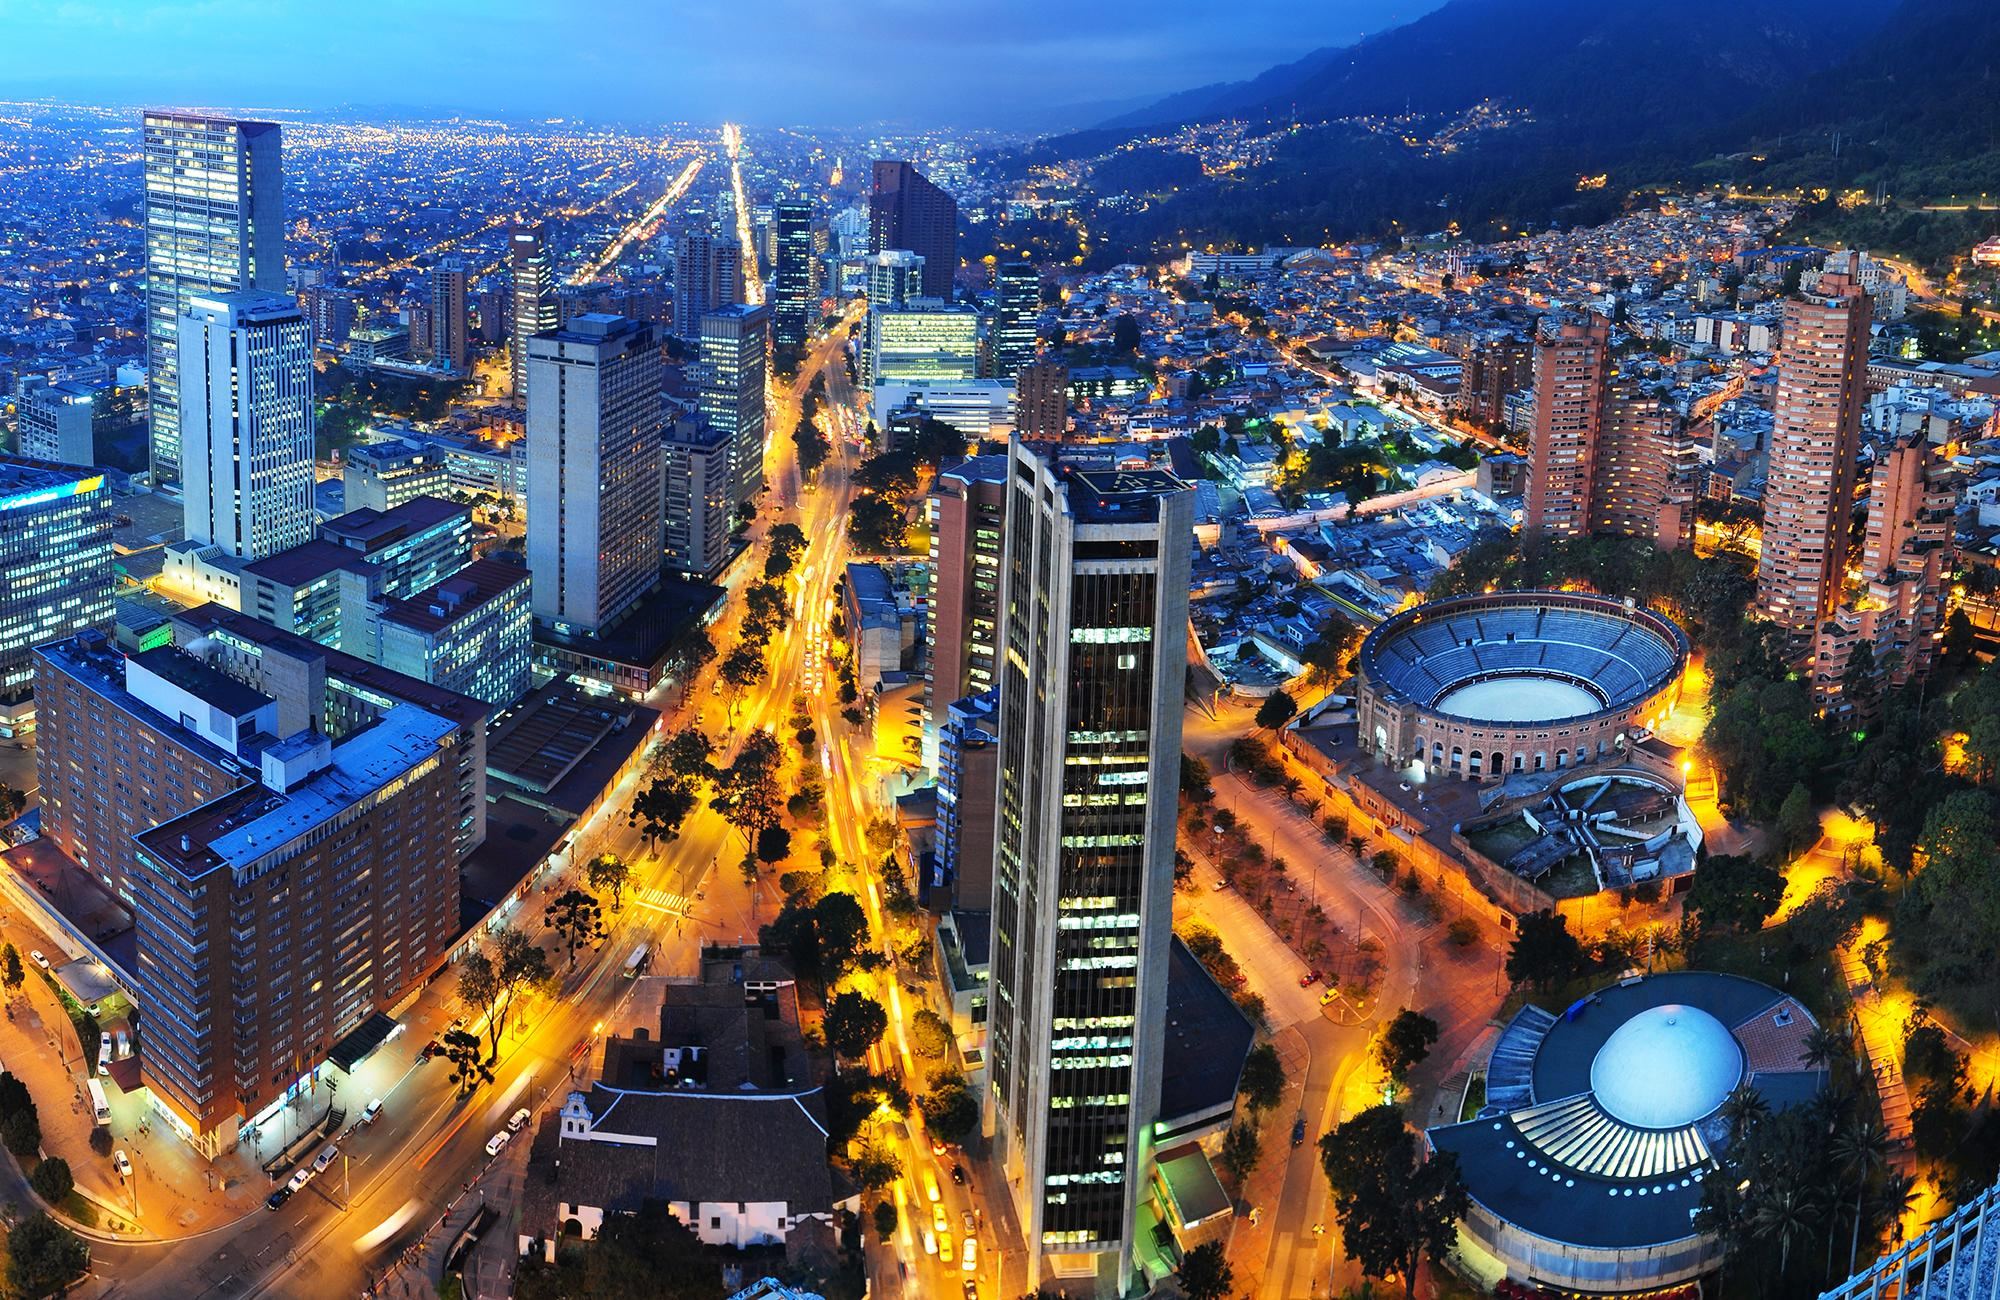 8 Reasons Why Bogota, Colombia Has Great Night Life